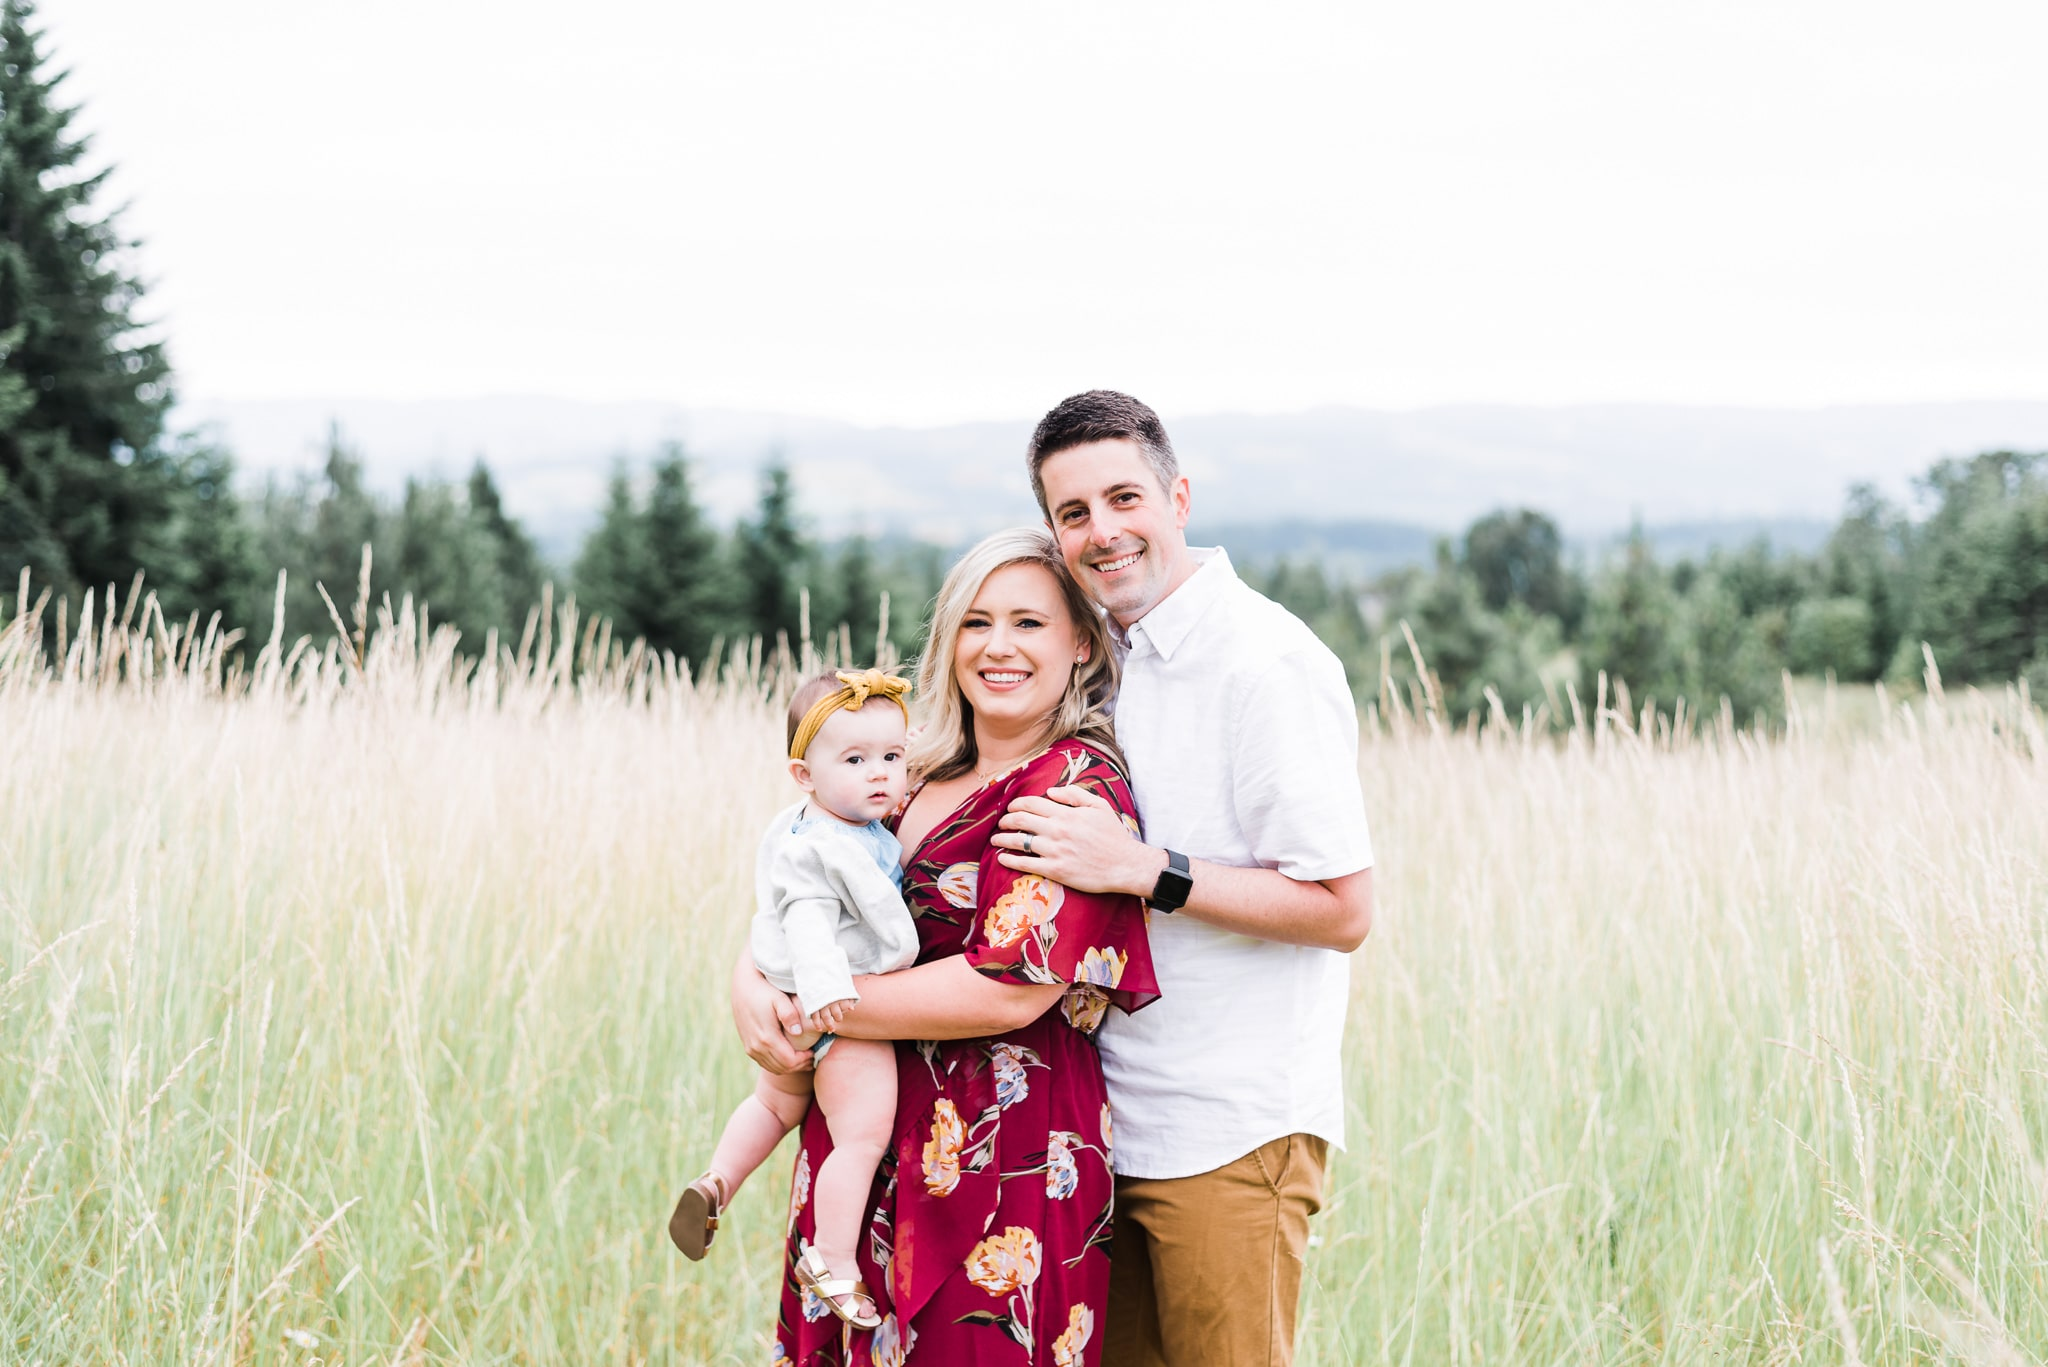 One year photos in Portland Oregon by family photographer Elizabeth Hite Photography